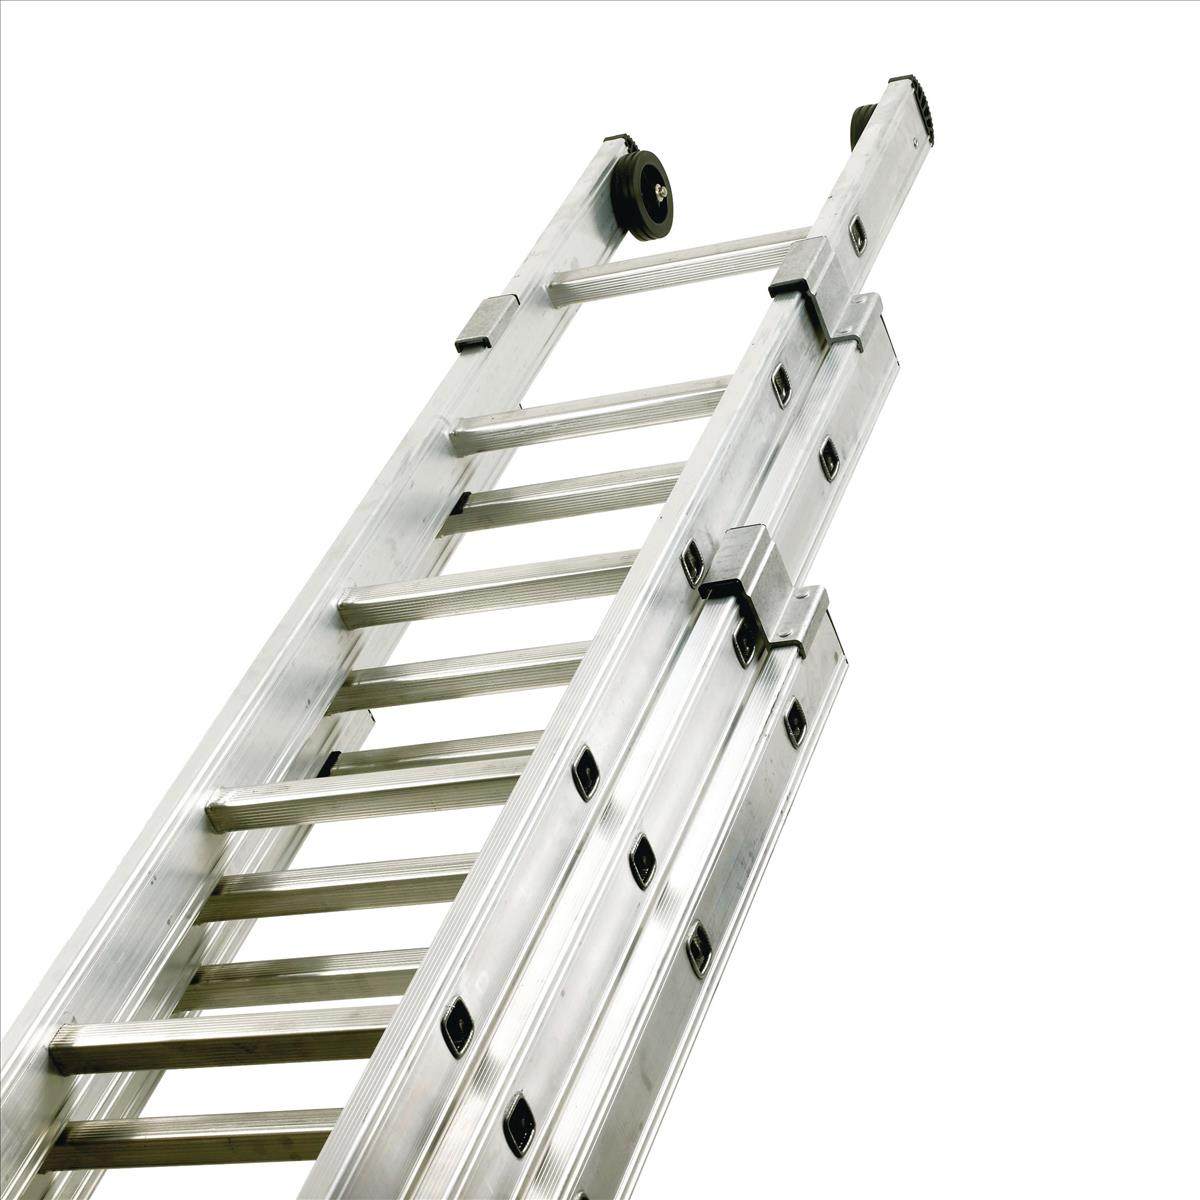 Image for Aluminium Push Up Ladder 3 Section Rungs 3x8